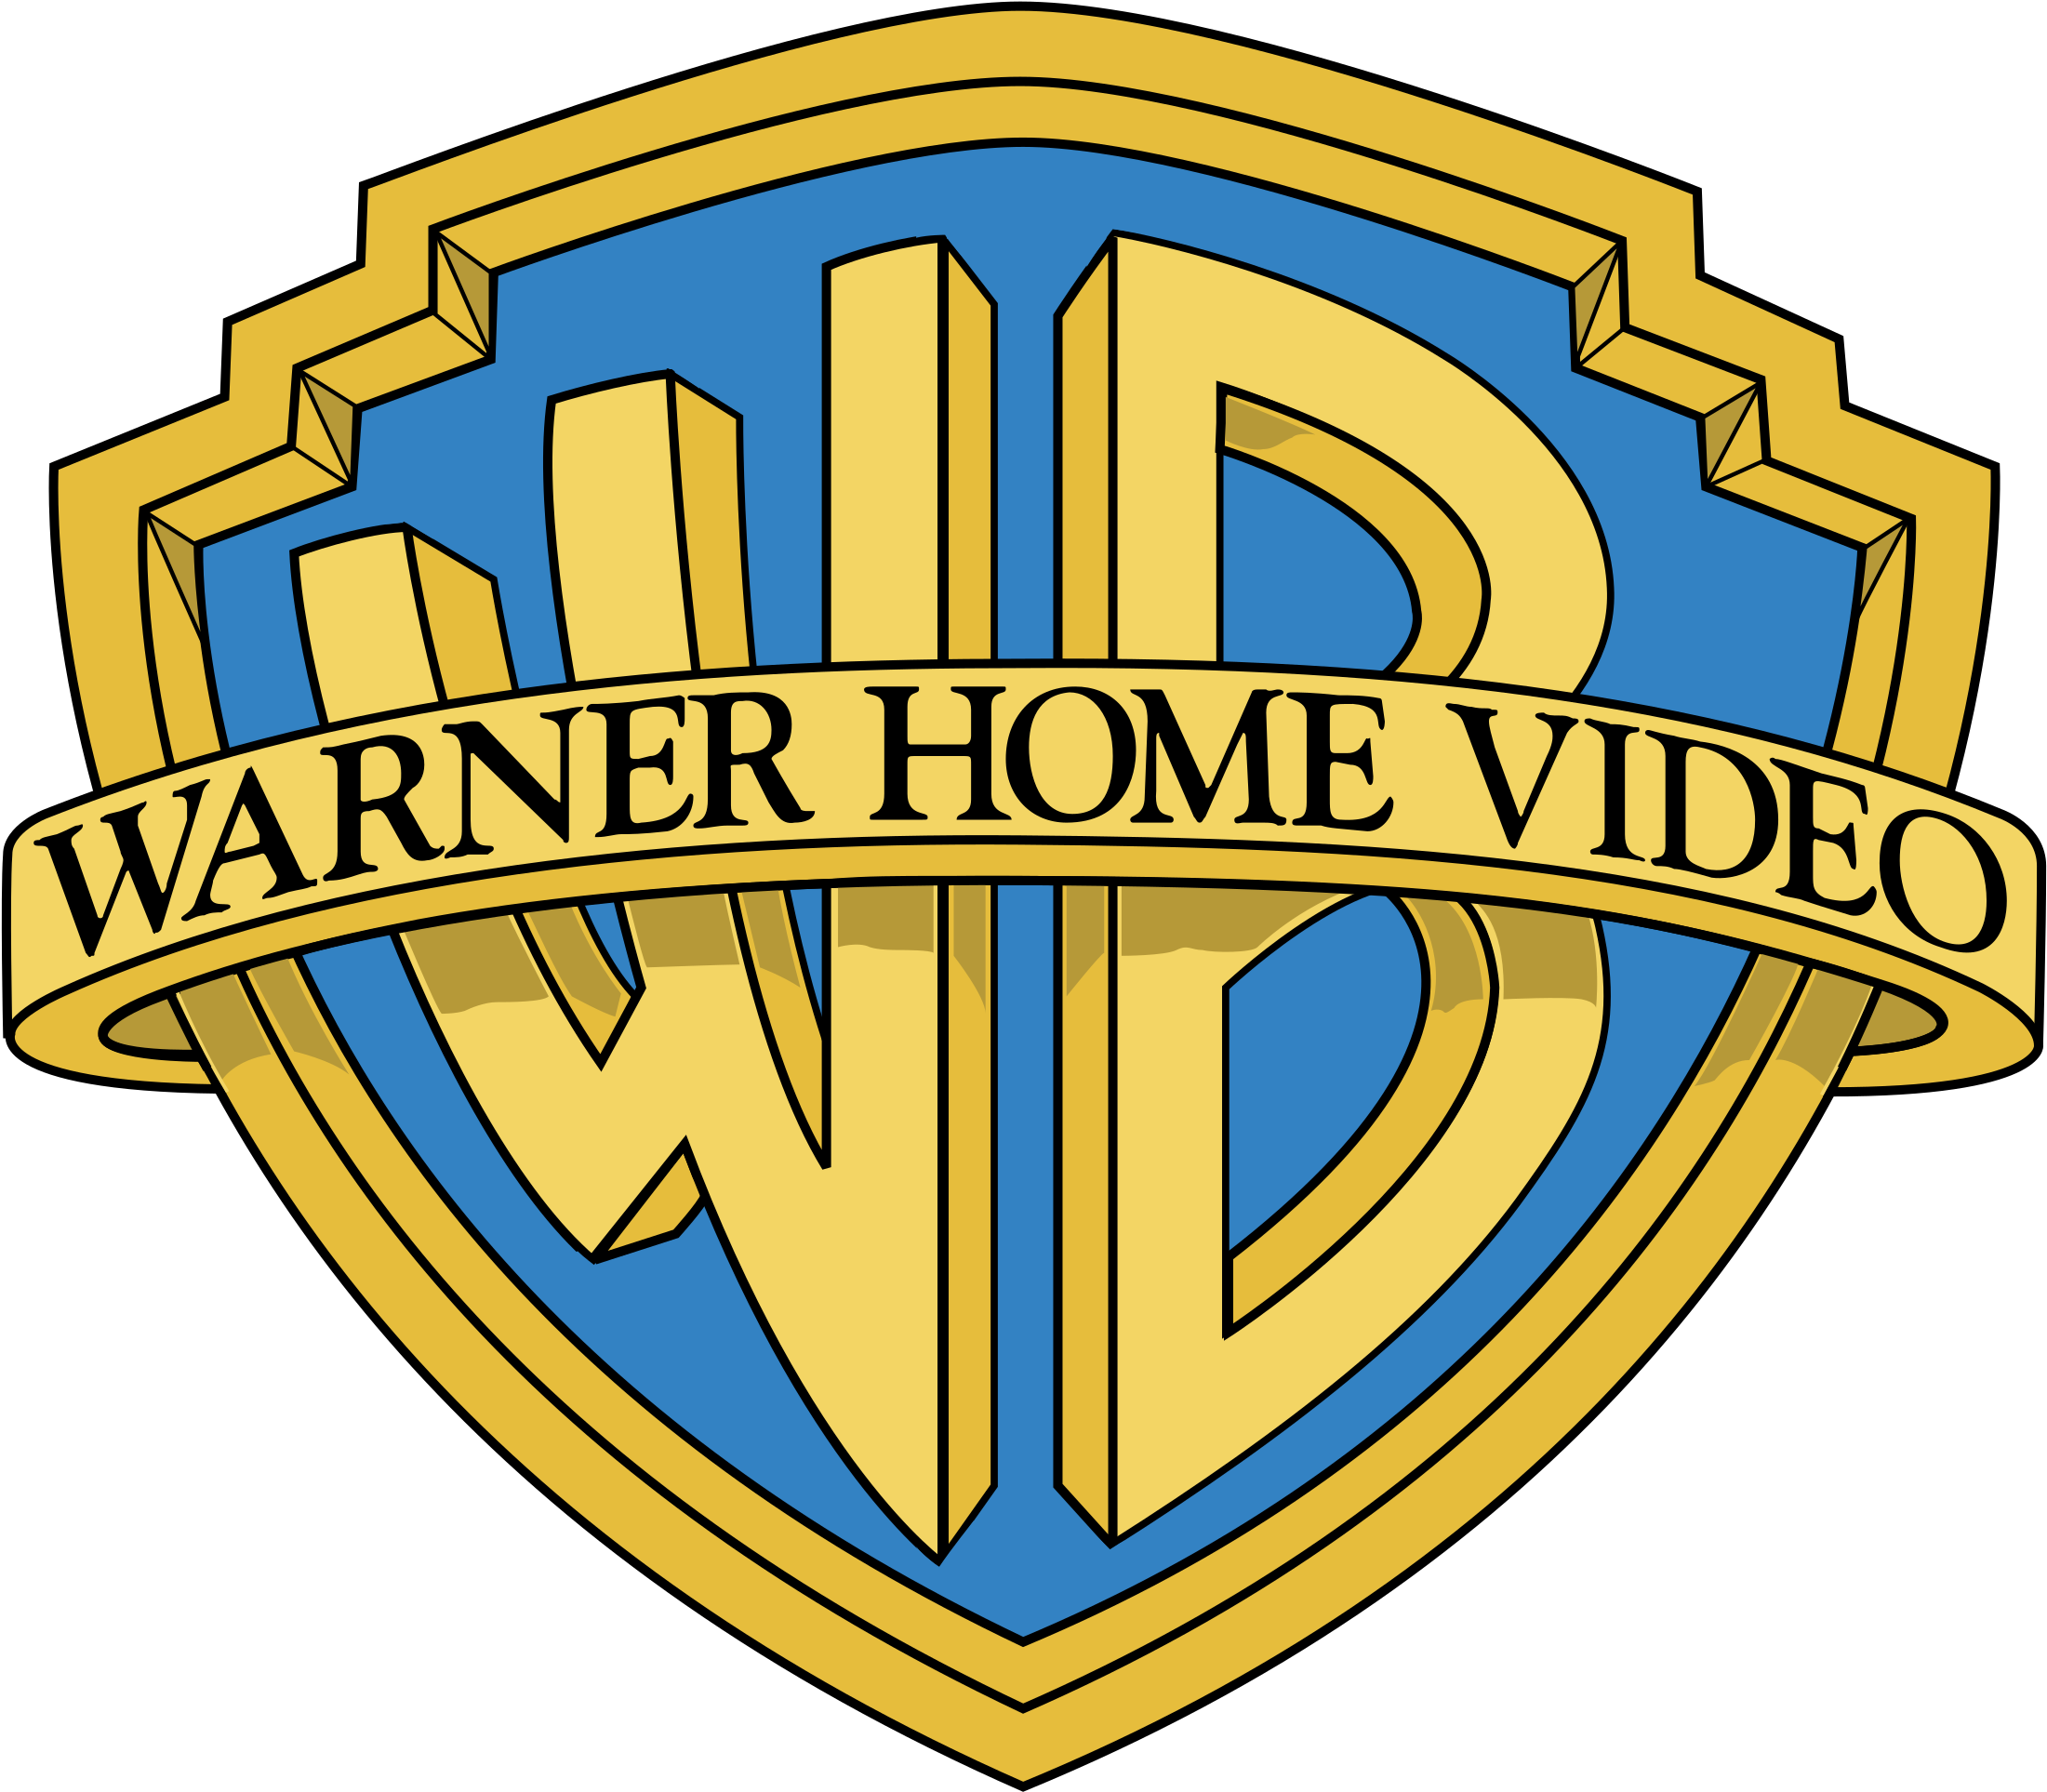 Warner Home Video Logo 2010 New Version Hd Youtube